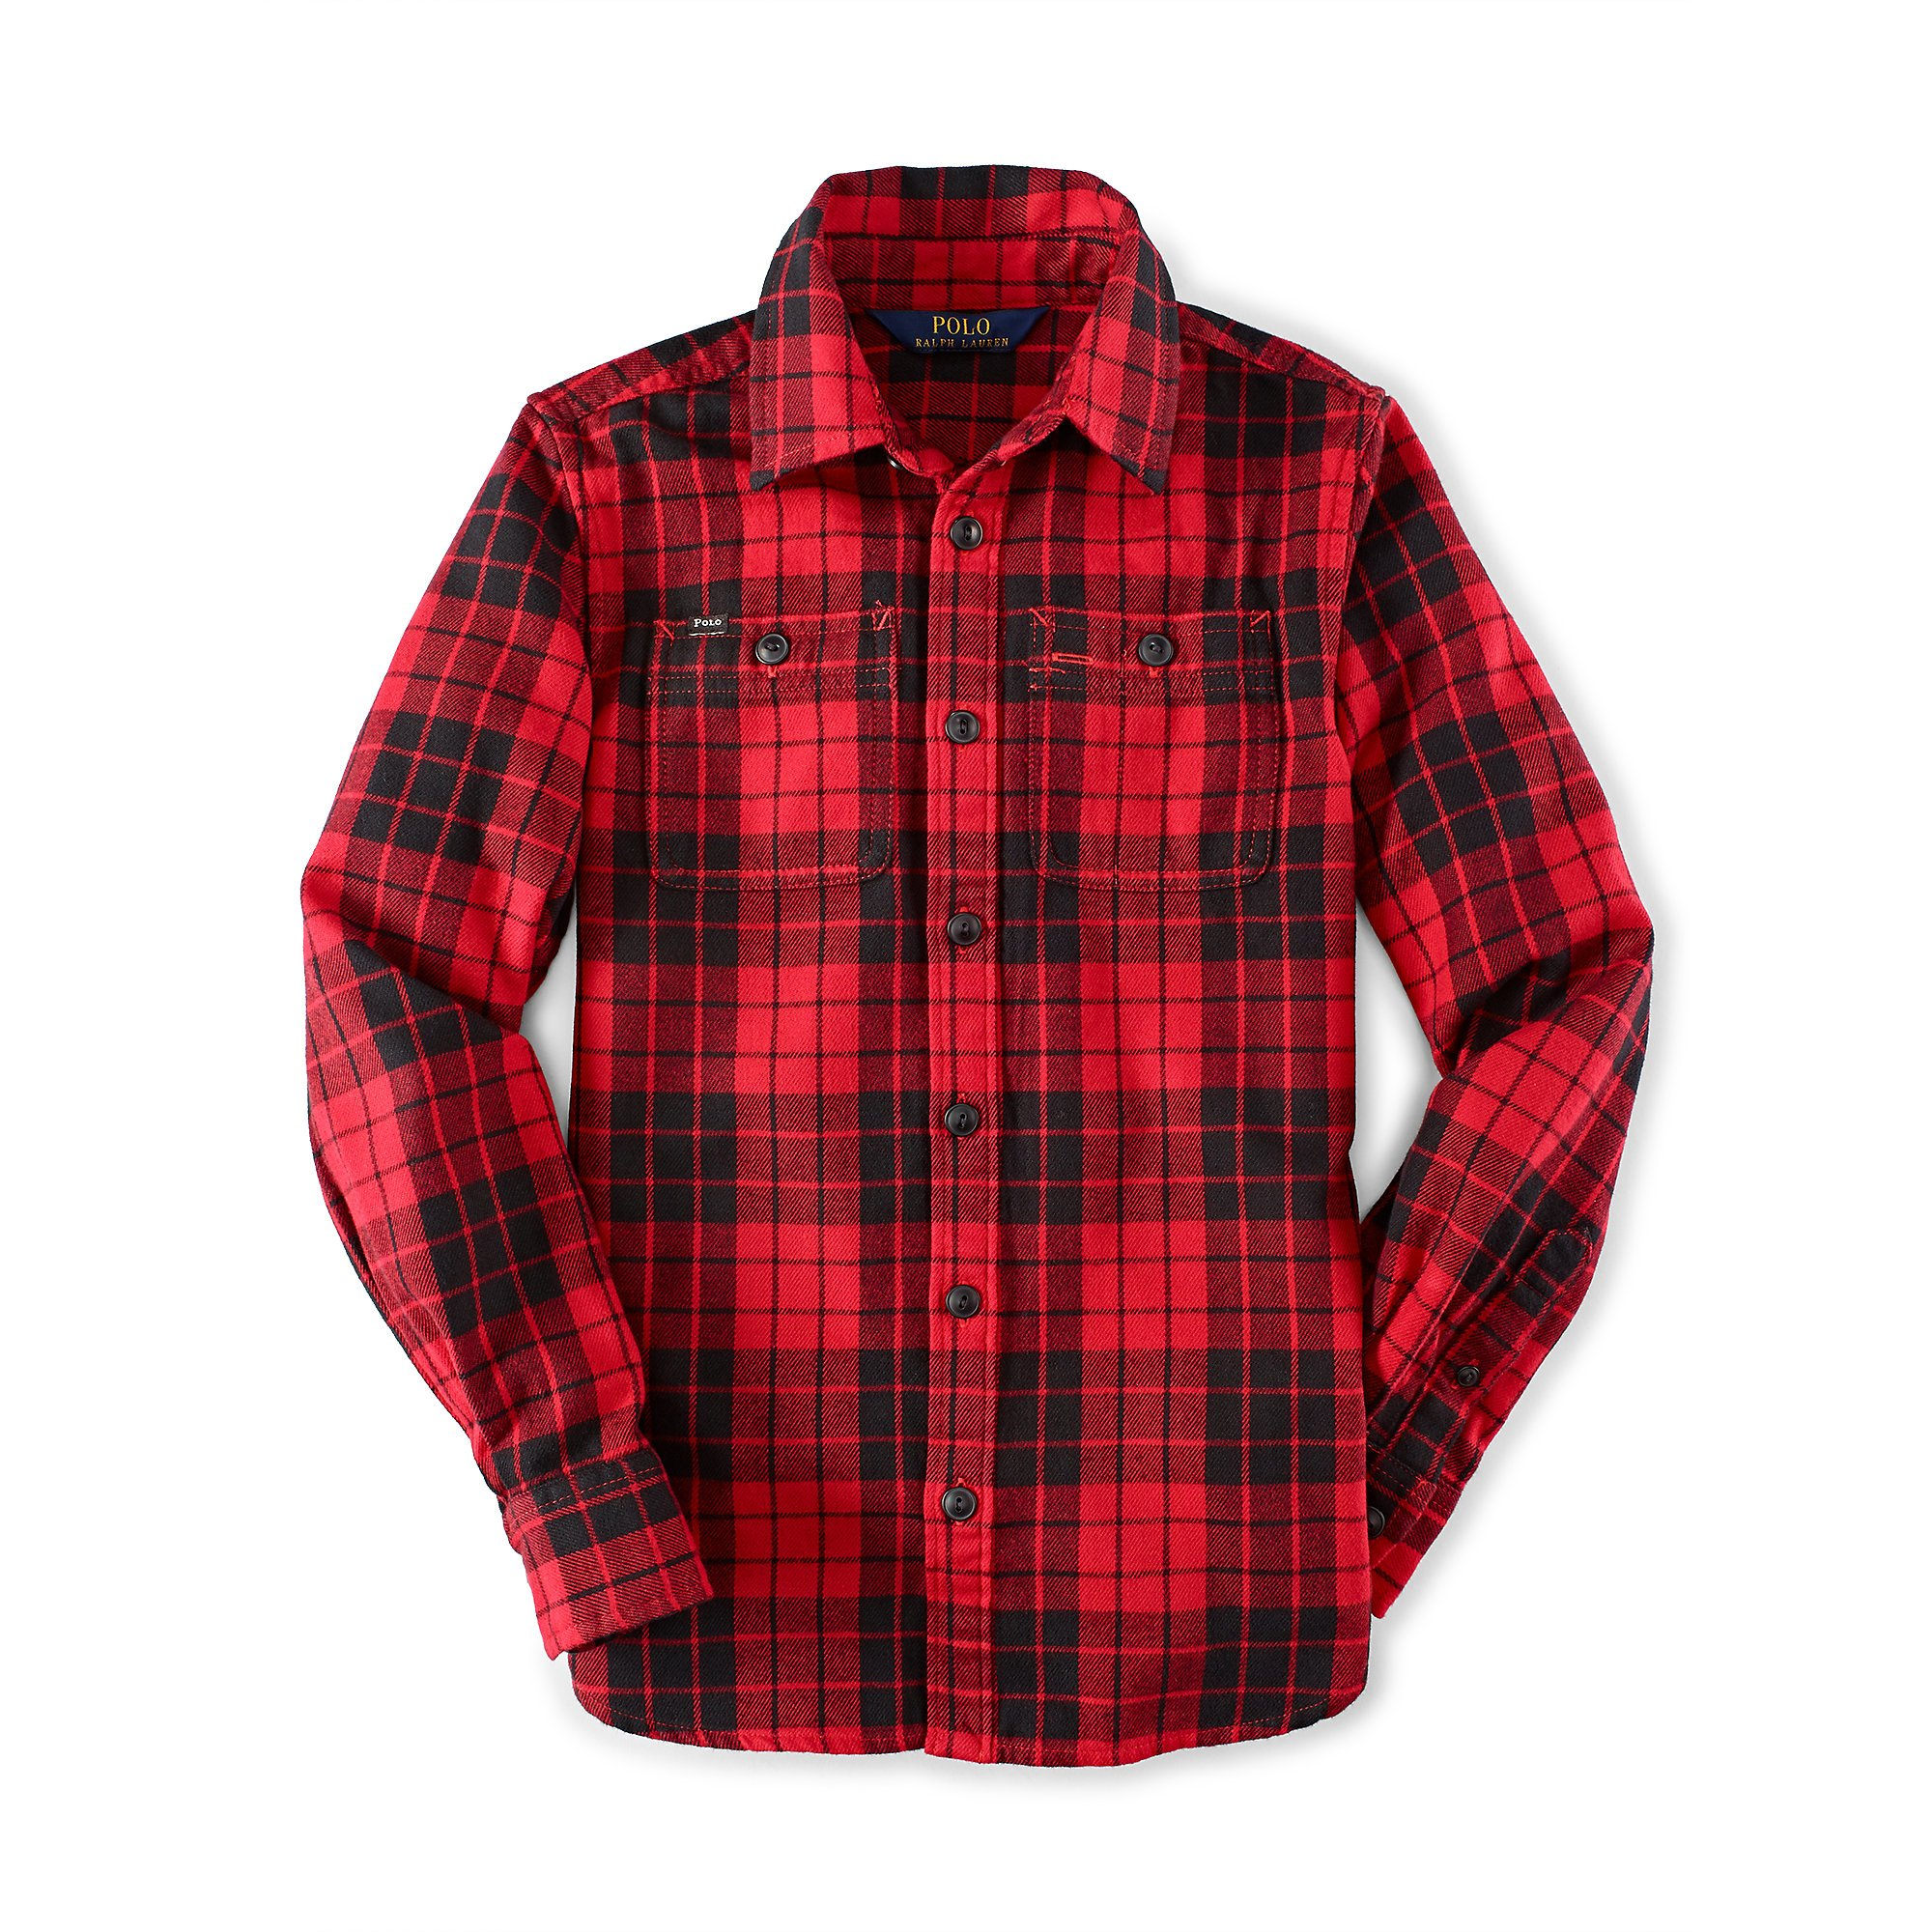 Ralph lauren red and black plaid shirt mens for Red and white plaid shirt mens